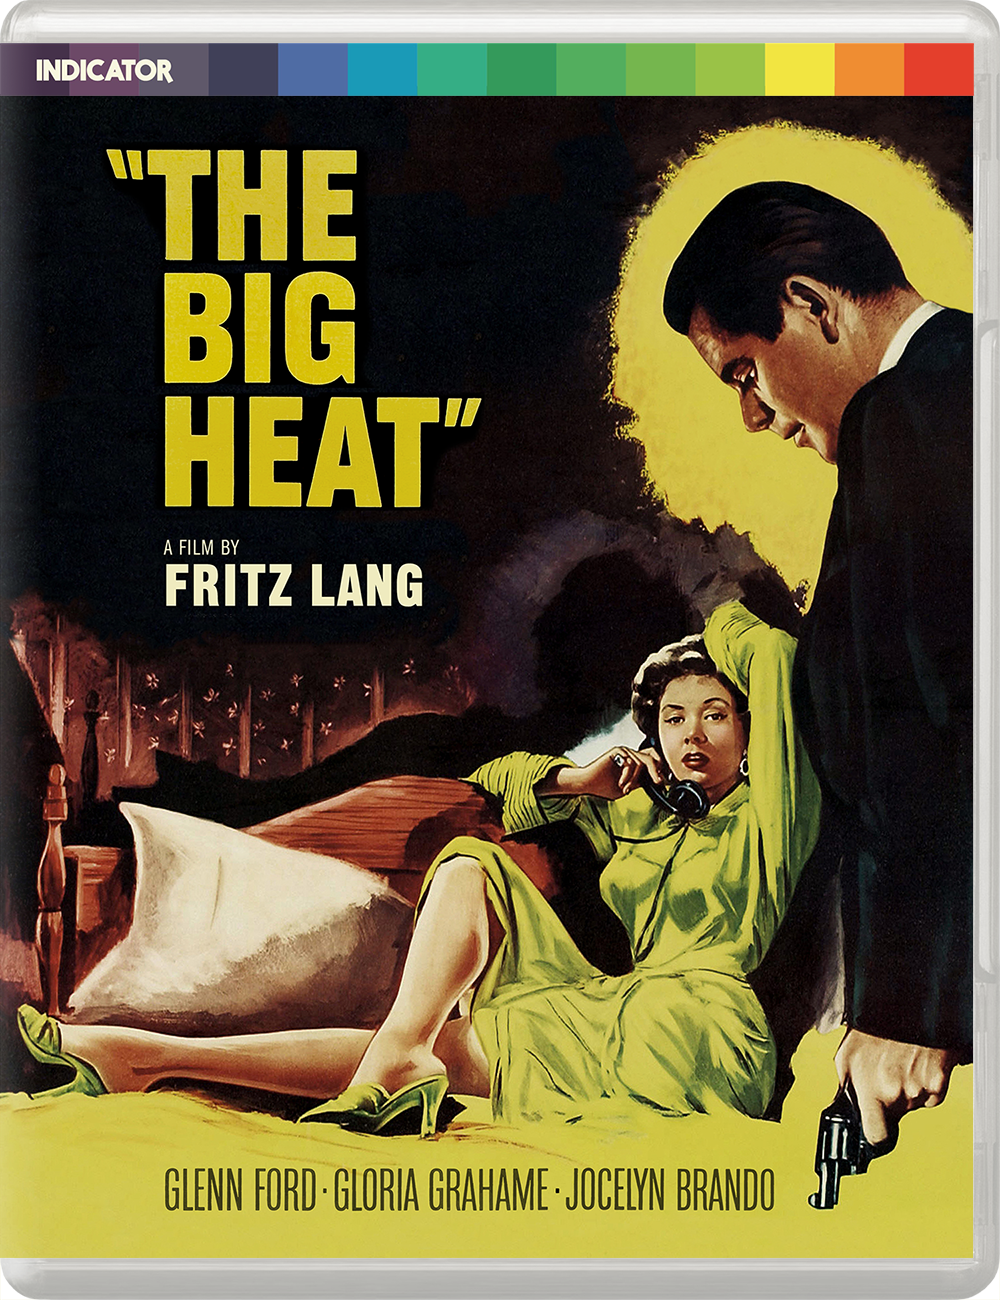 THE BIG HEAT - LE